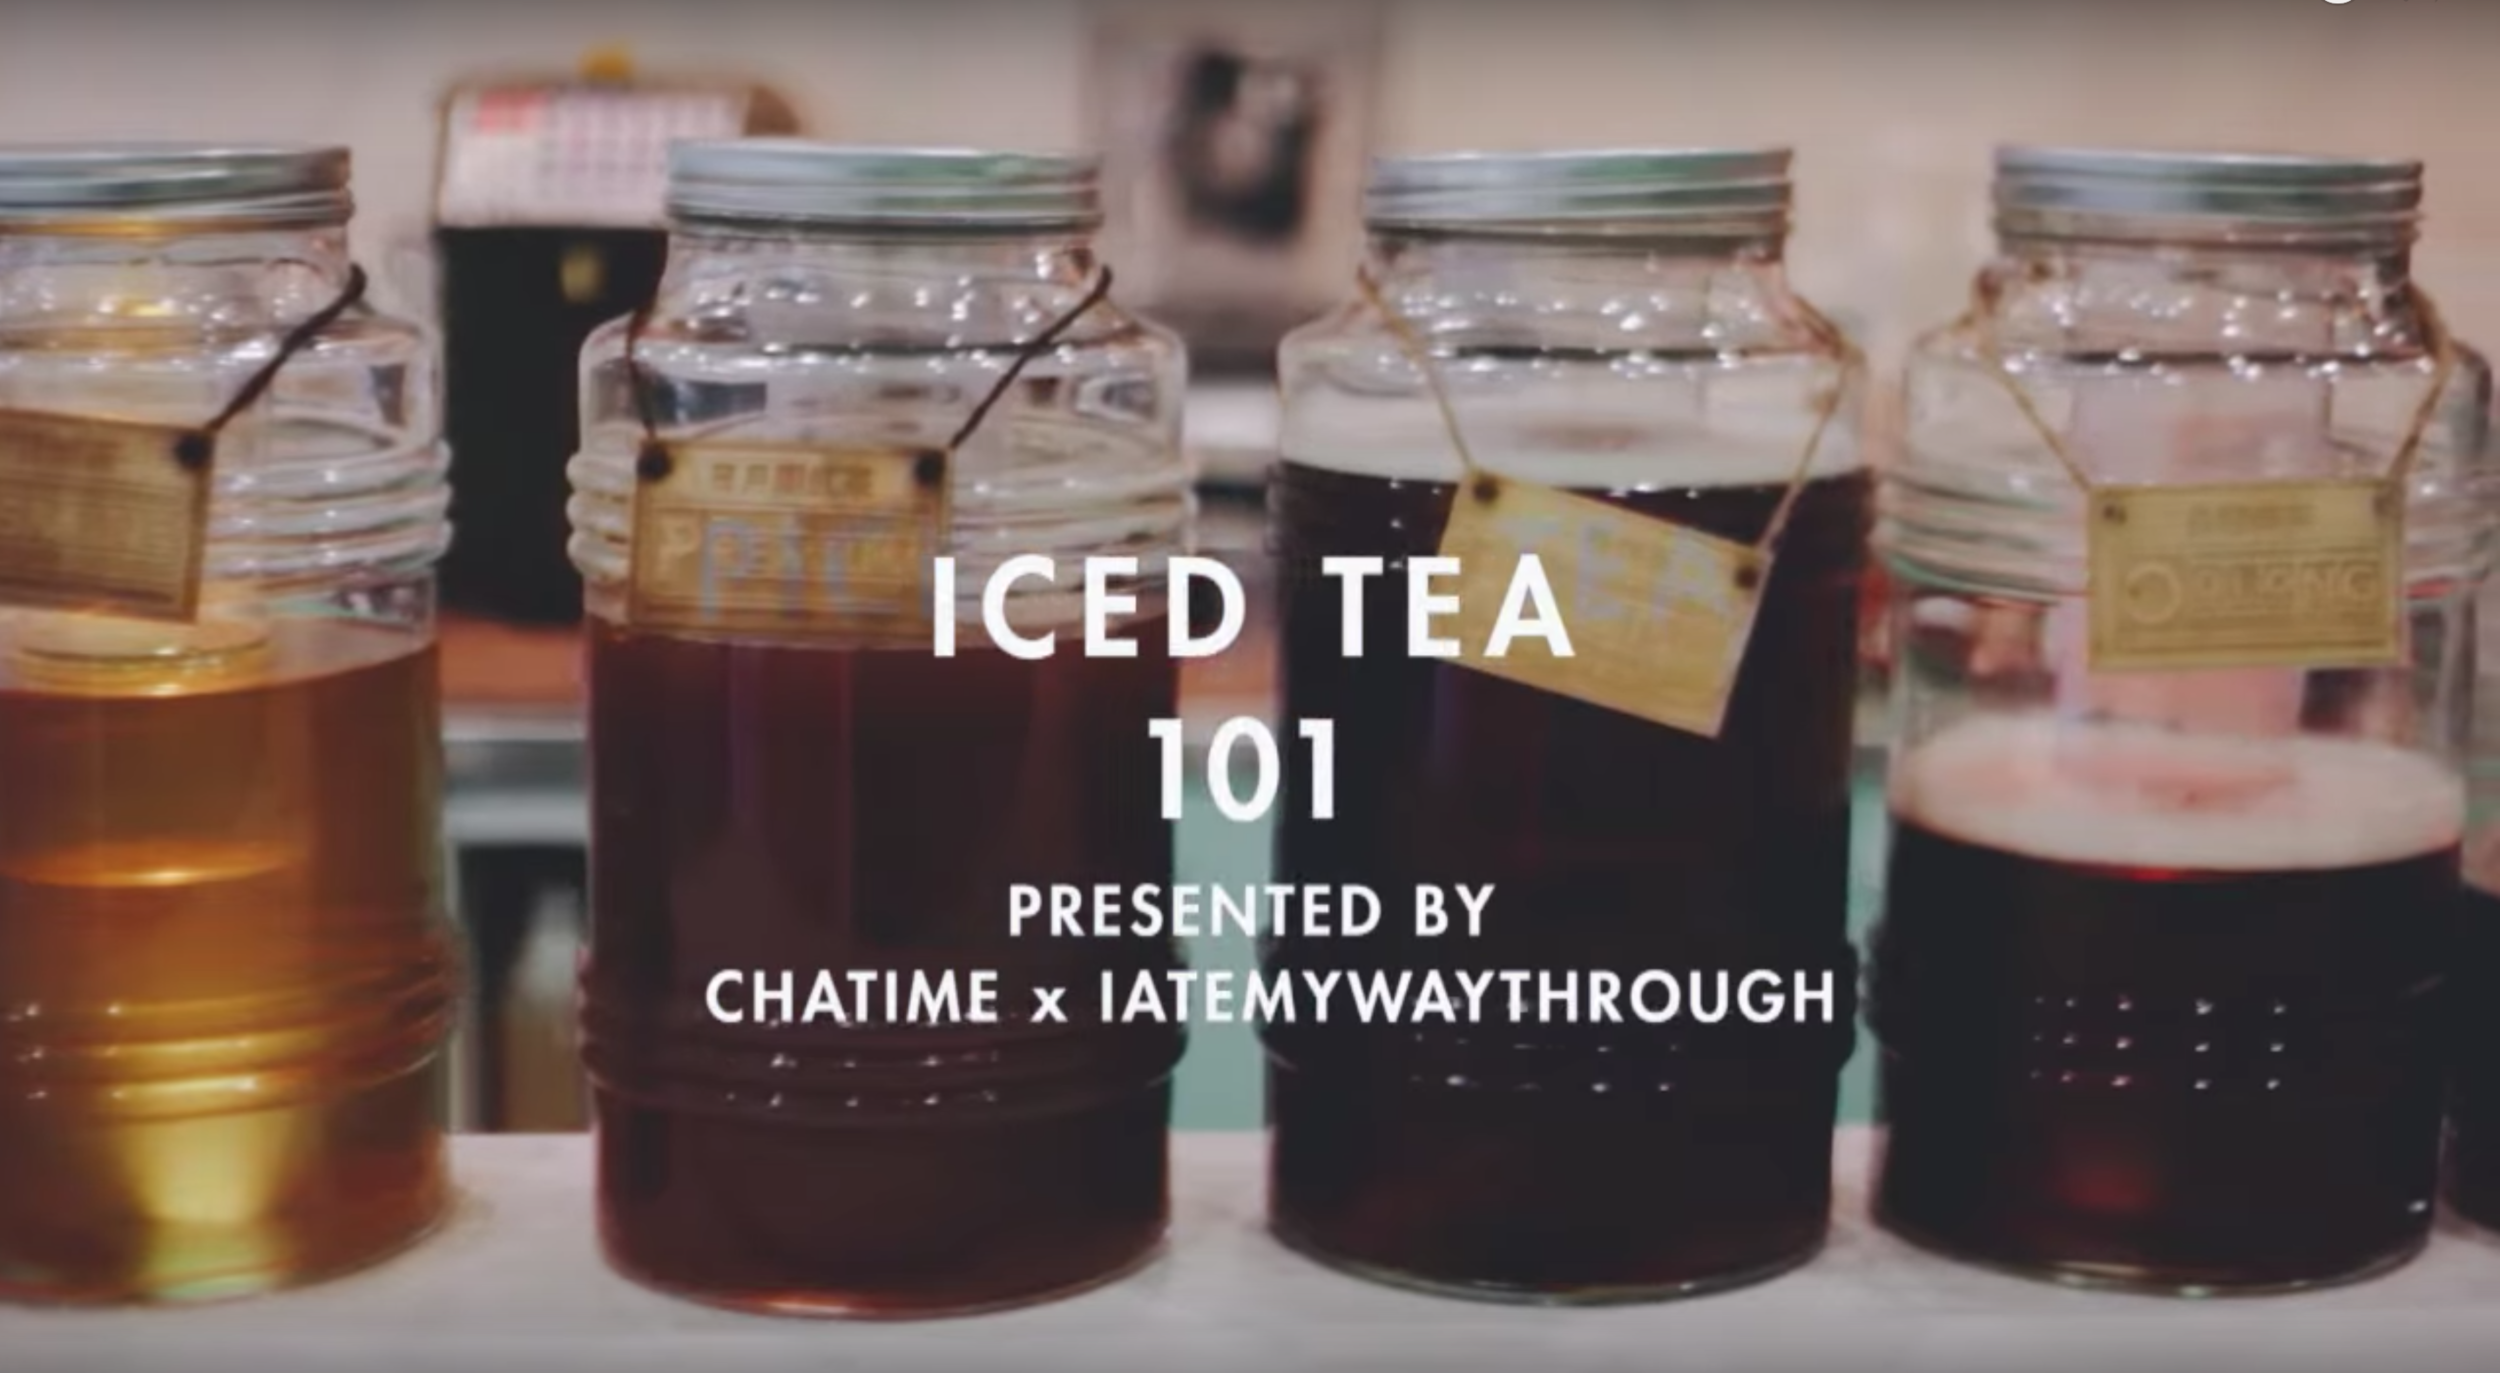 ICED TEA 101 - Multimedia guide to bubble/boba iced teain collaboration with Chatime Australiafor I Ate My Way Through.